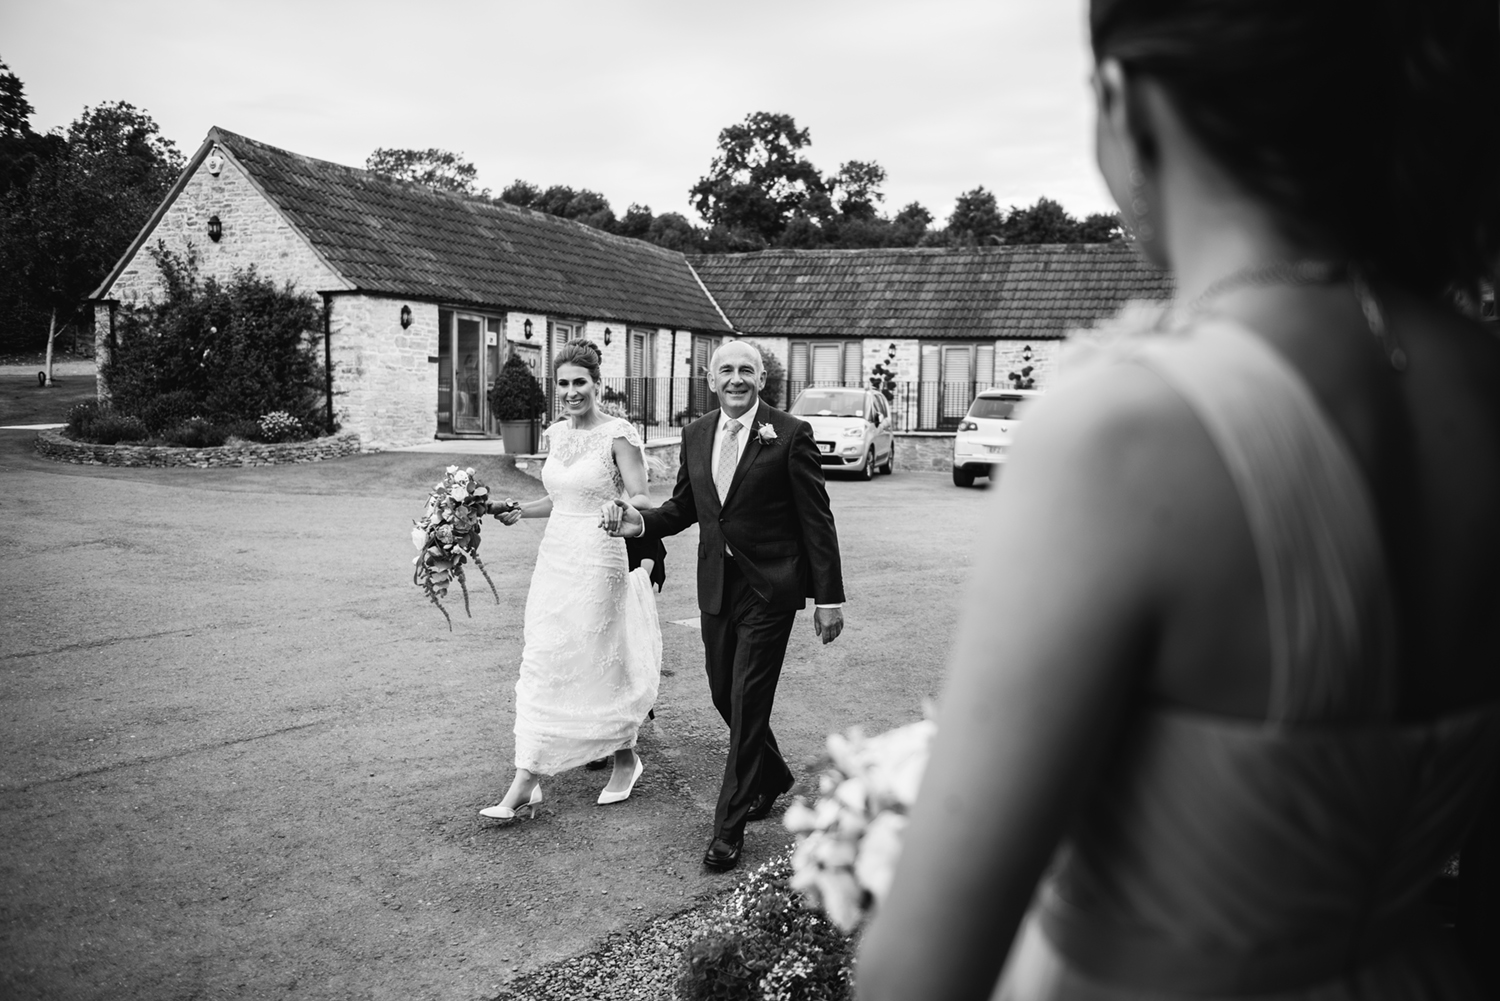 Kingscote-Barn-Wedding-Photographer-44.jpg